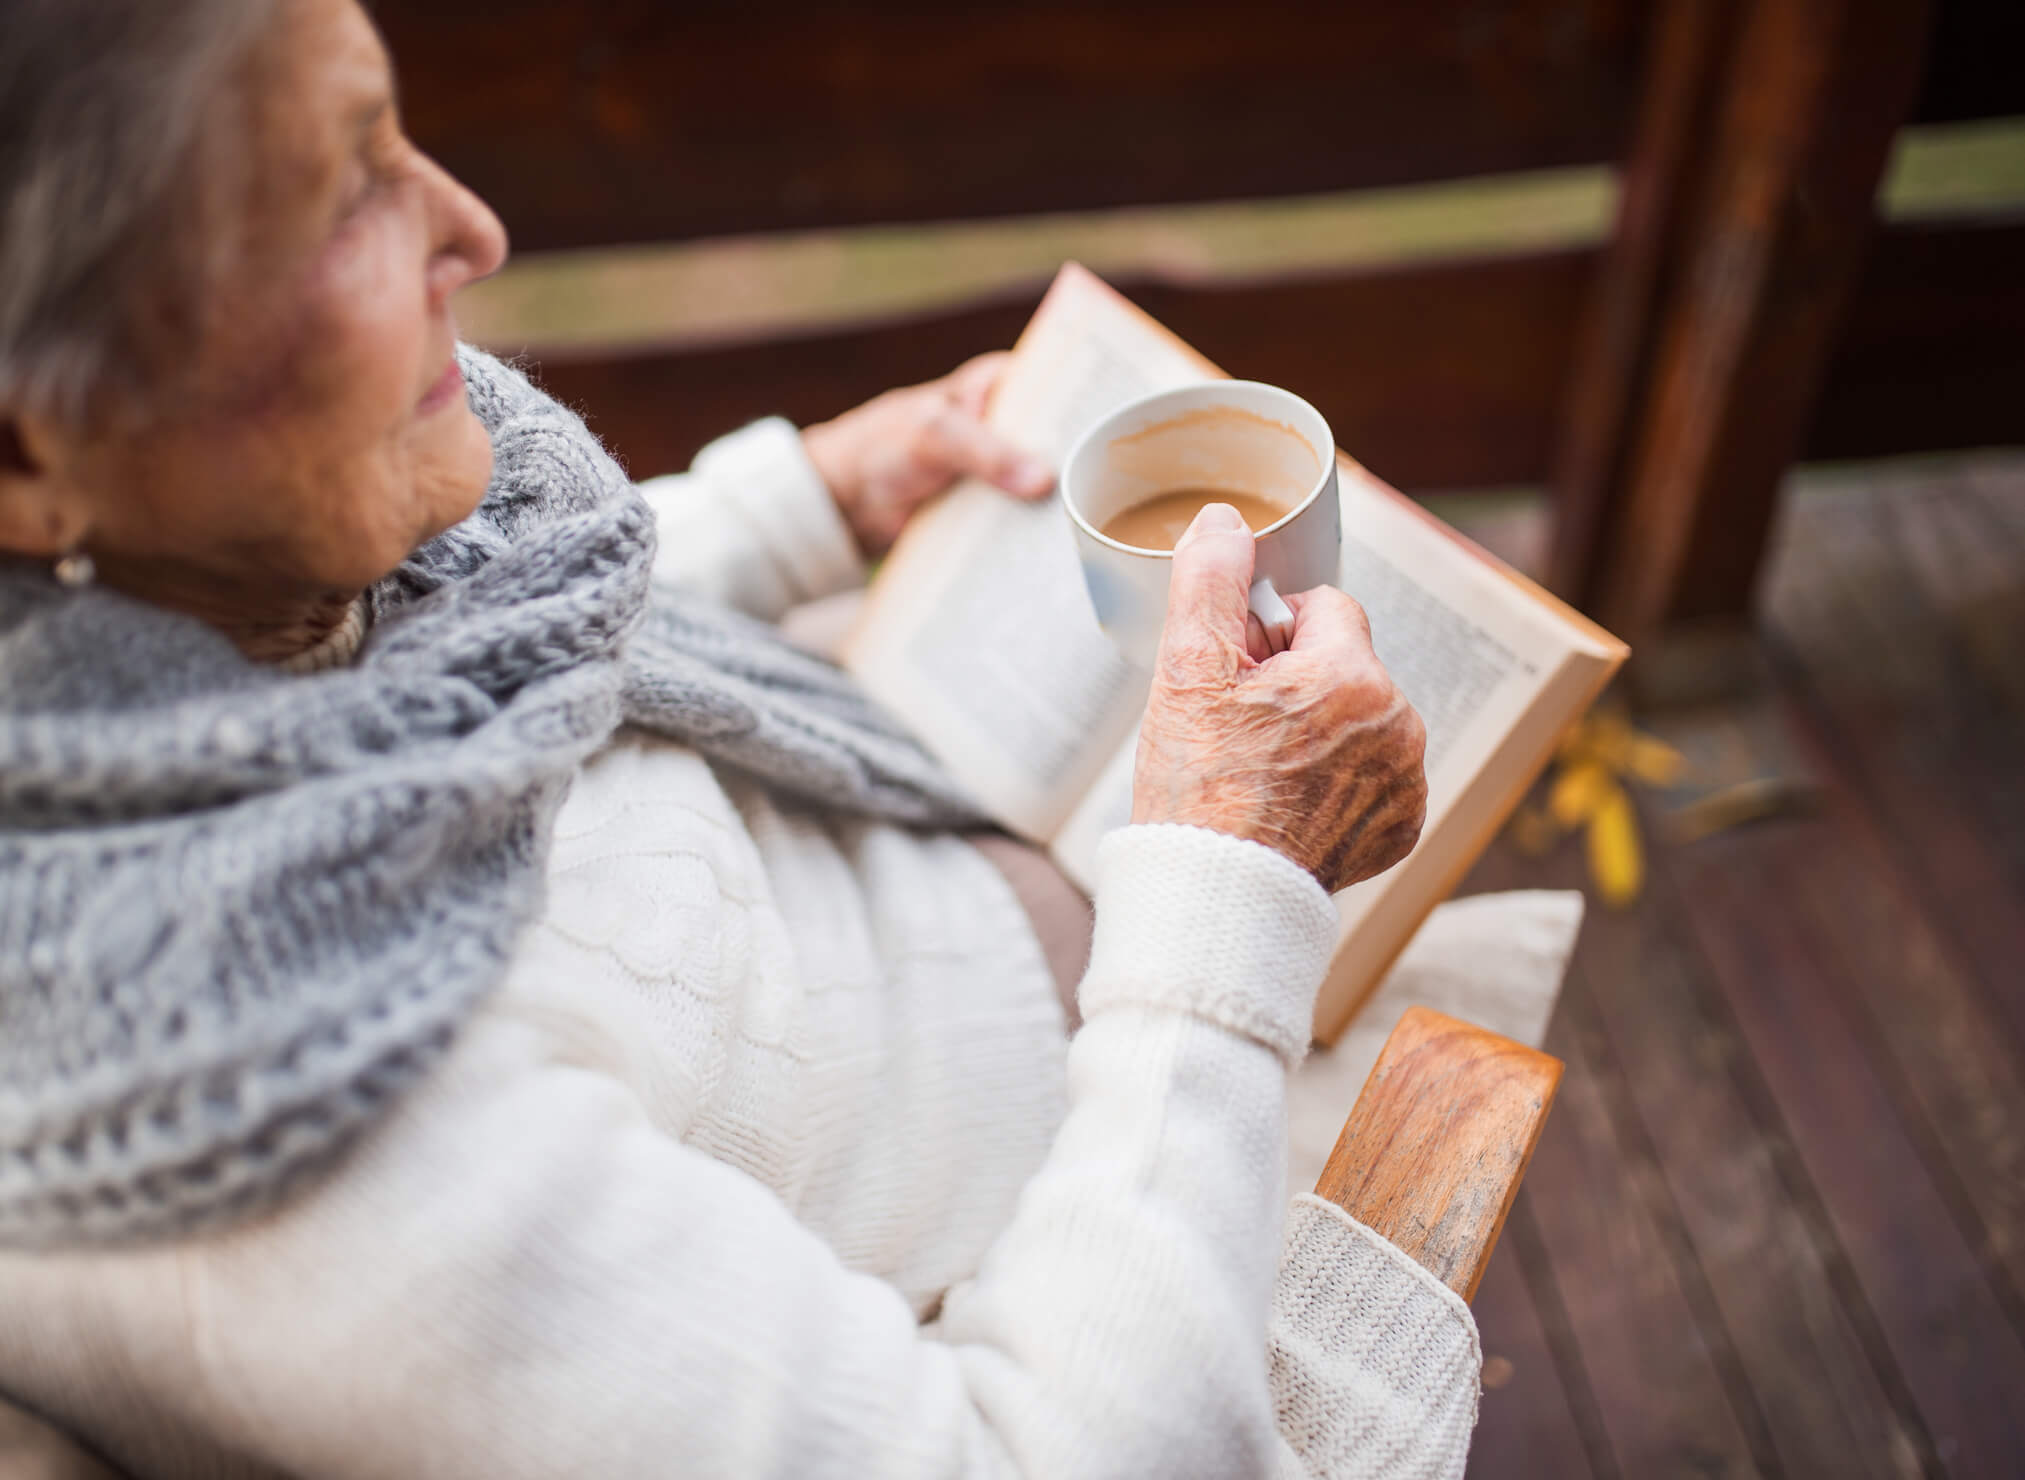 Book Recommendations for an Elderly Parent